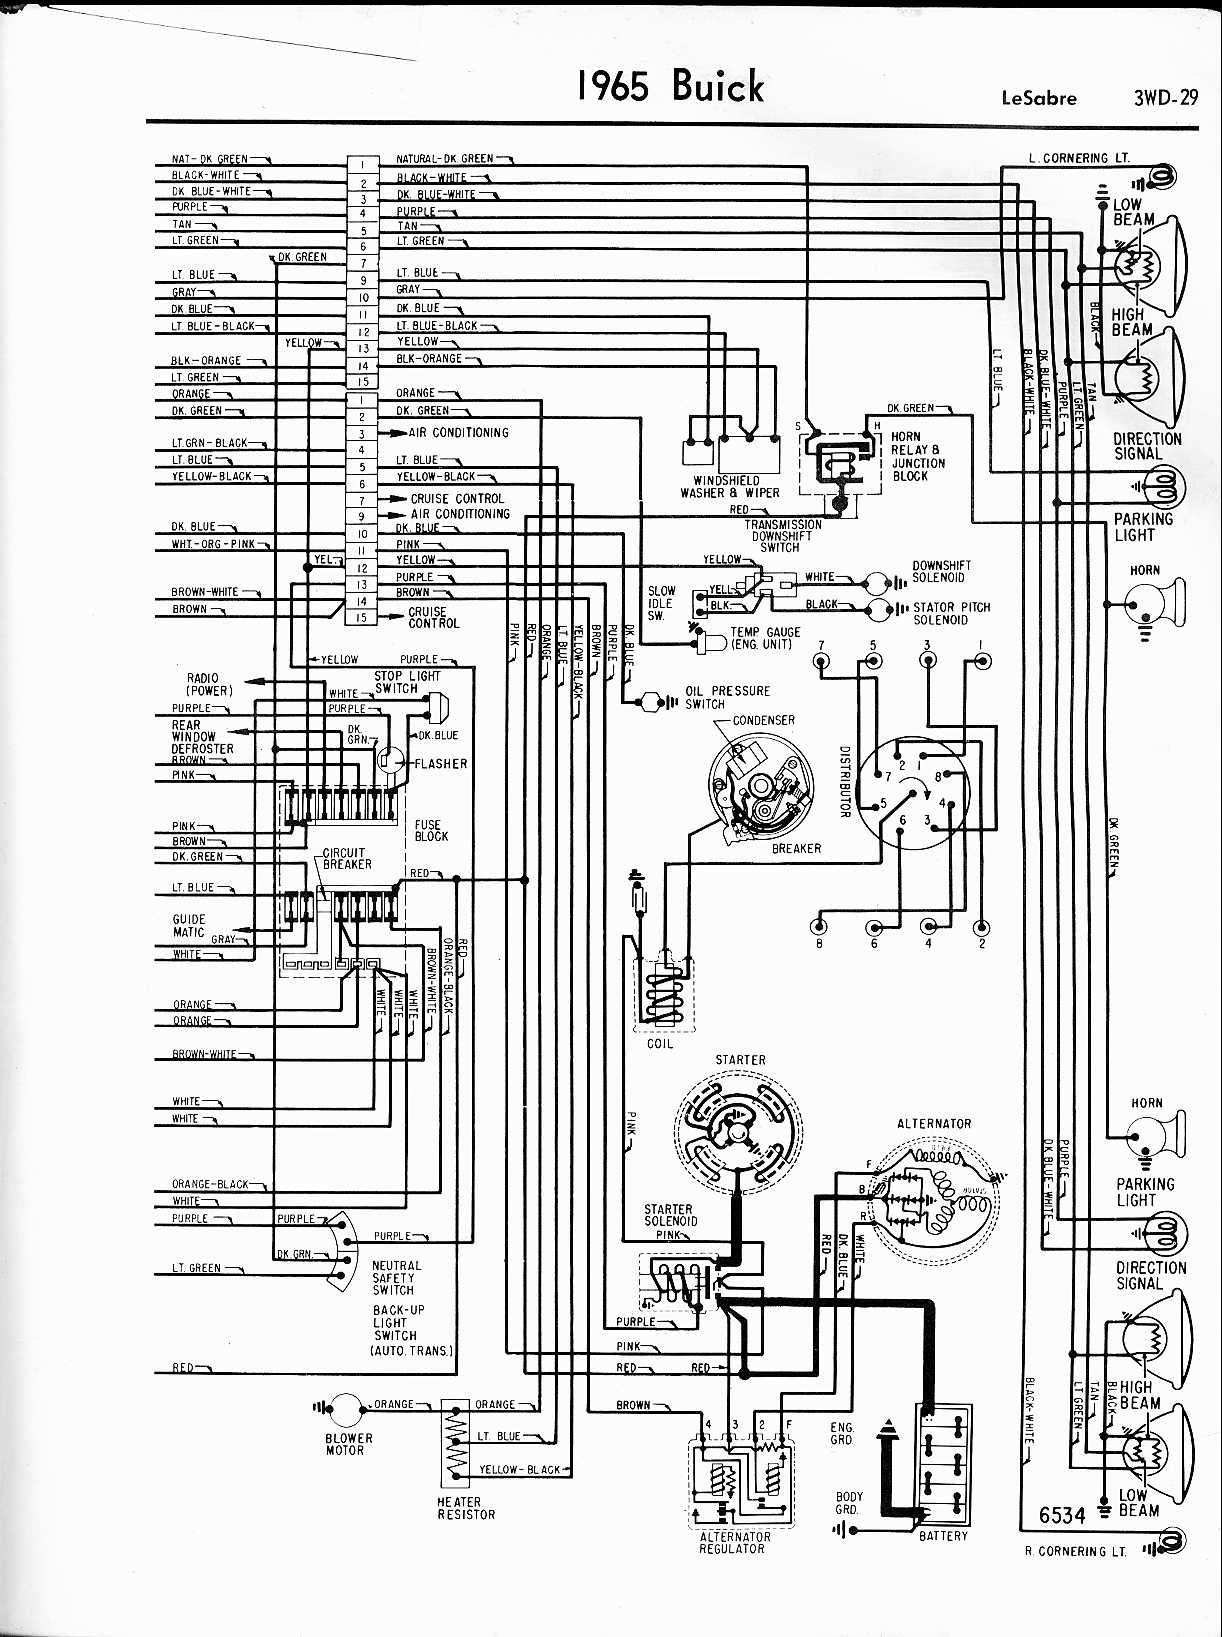 Chevy El Camino Wiring Diagram